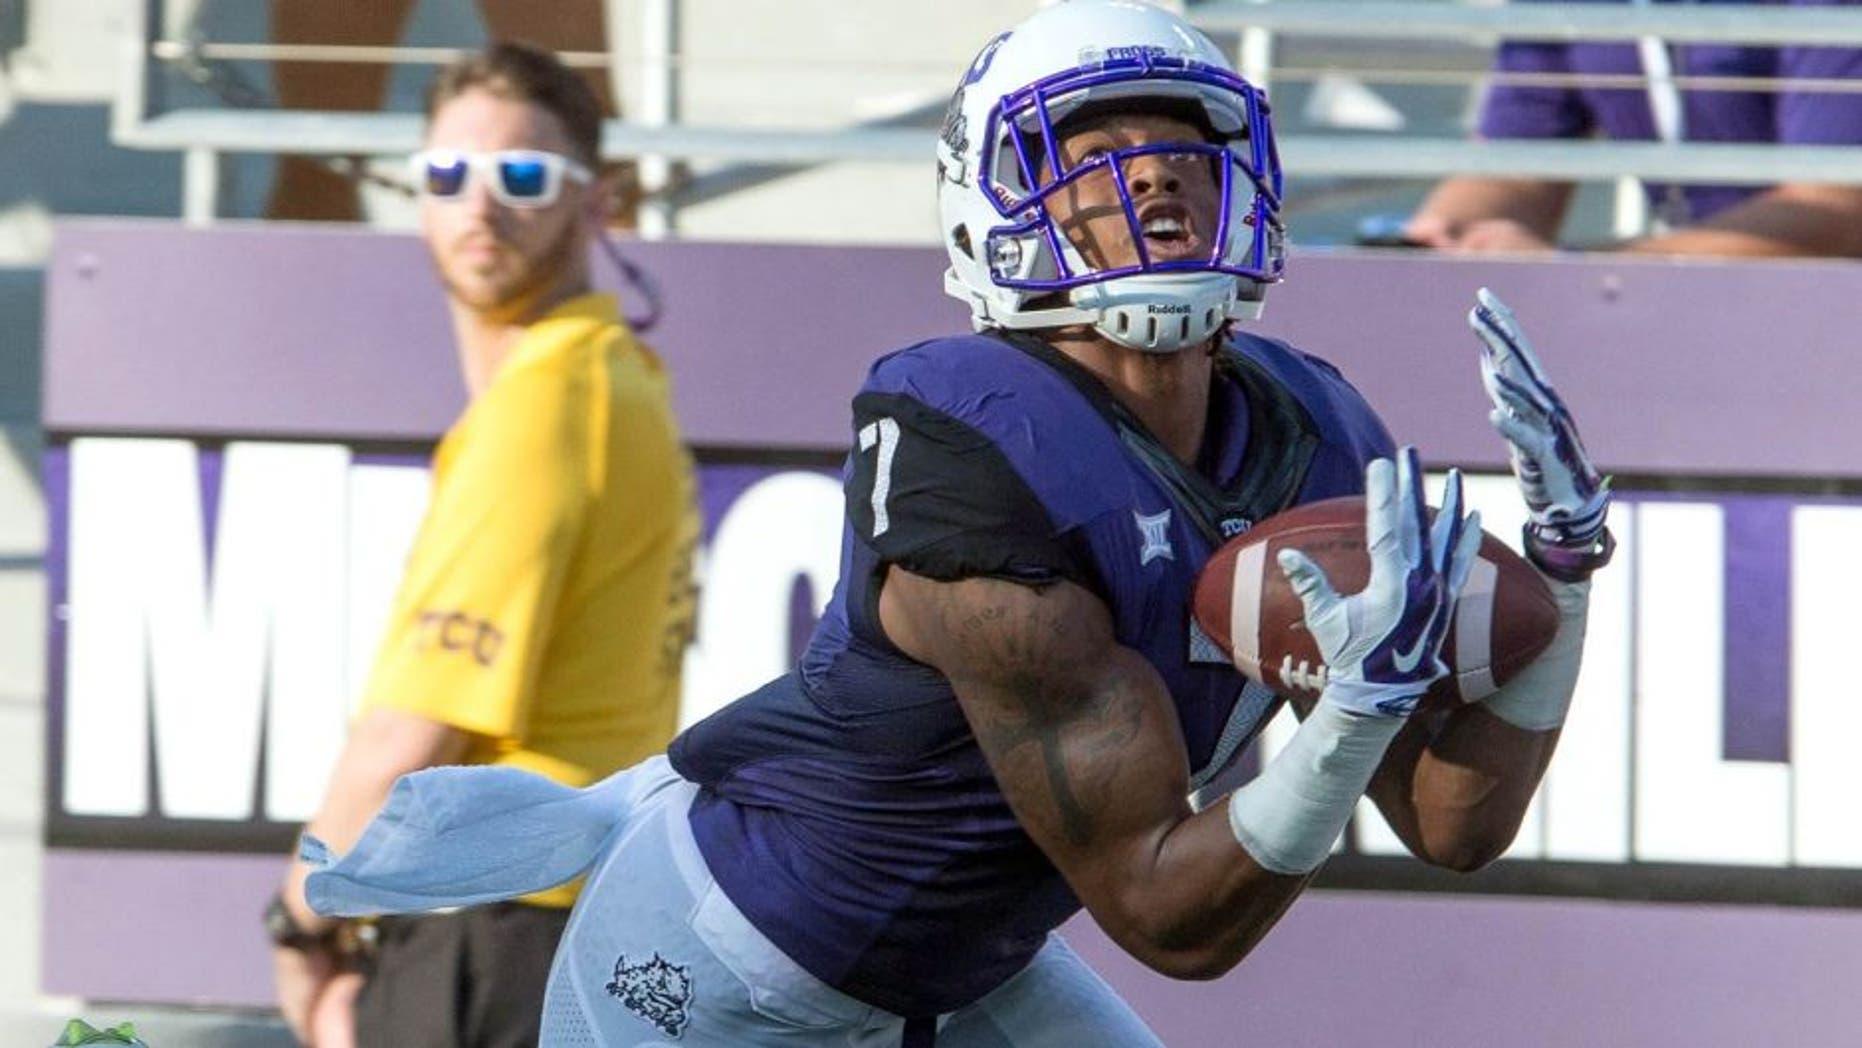 Aug 30, 2014; Fort Worth, TX, USA; TCU Horned Frogs wide receiver Kolby Listenbee (7) catches a touchdown pass as Samford Bulldogs defensive back James Bradberry (21) defends during the first quarter at Amon G. Carter Stadium. Mandatory Credit: Jerome Miron-USA TODAY Sports